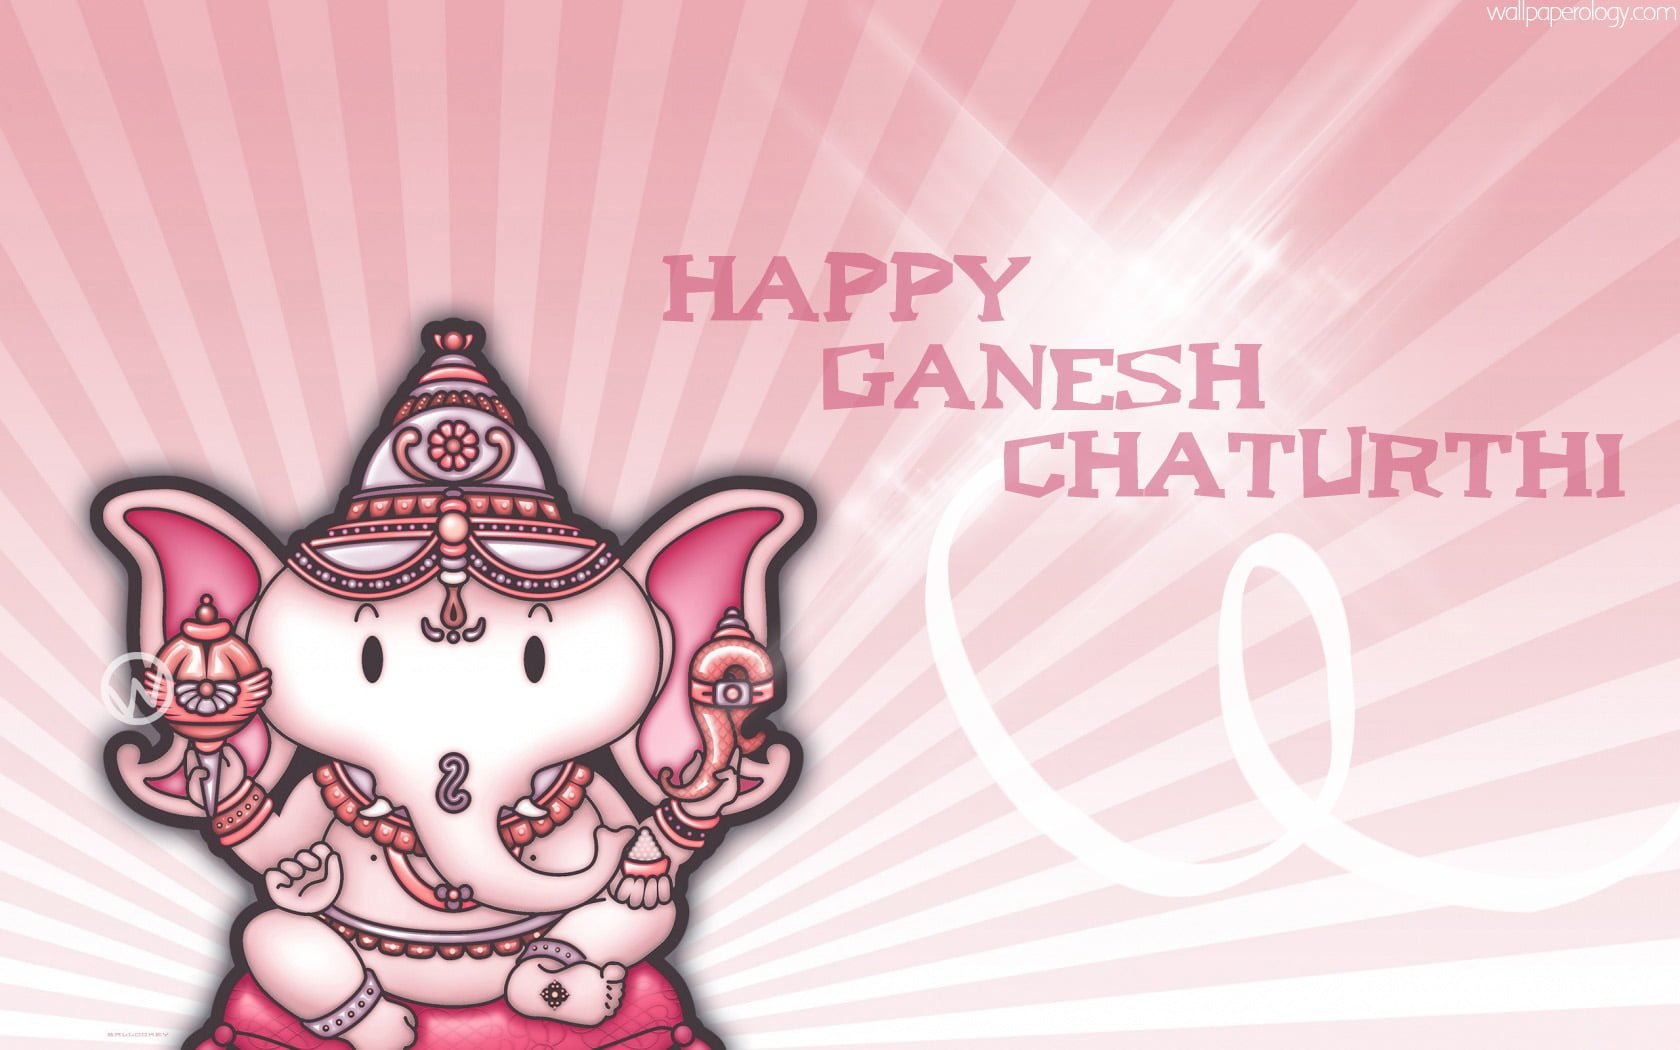 Happy Ganesh Chaturthi 2019 Hd Images For Whatsapp